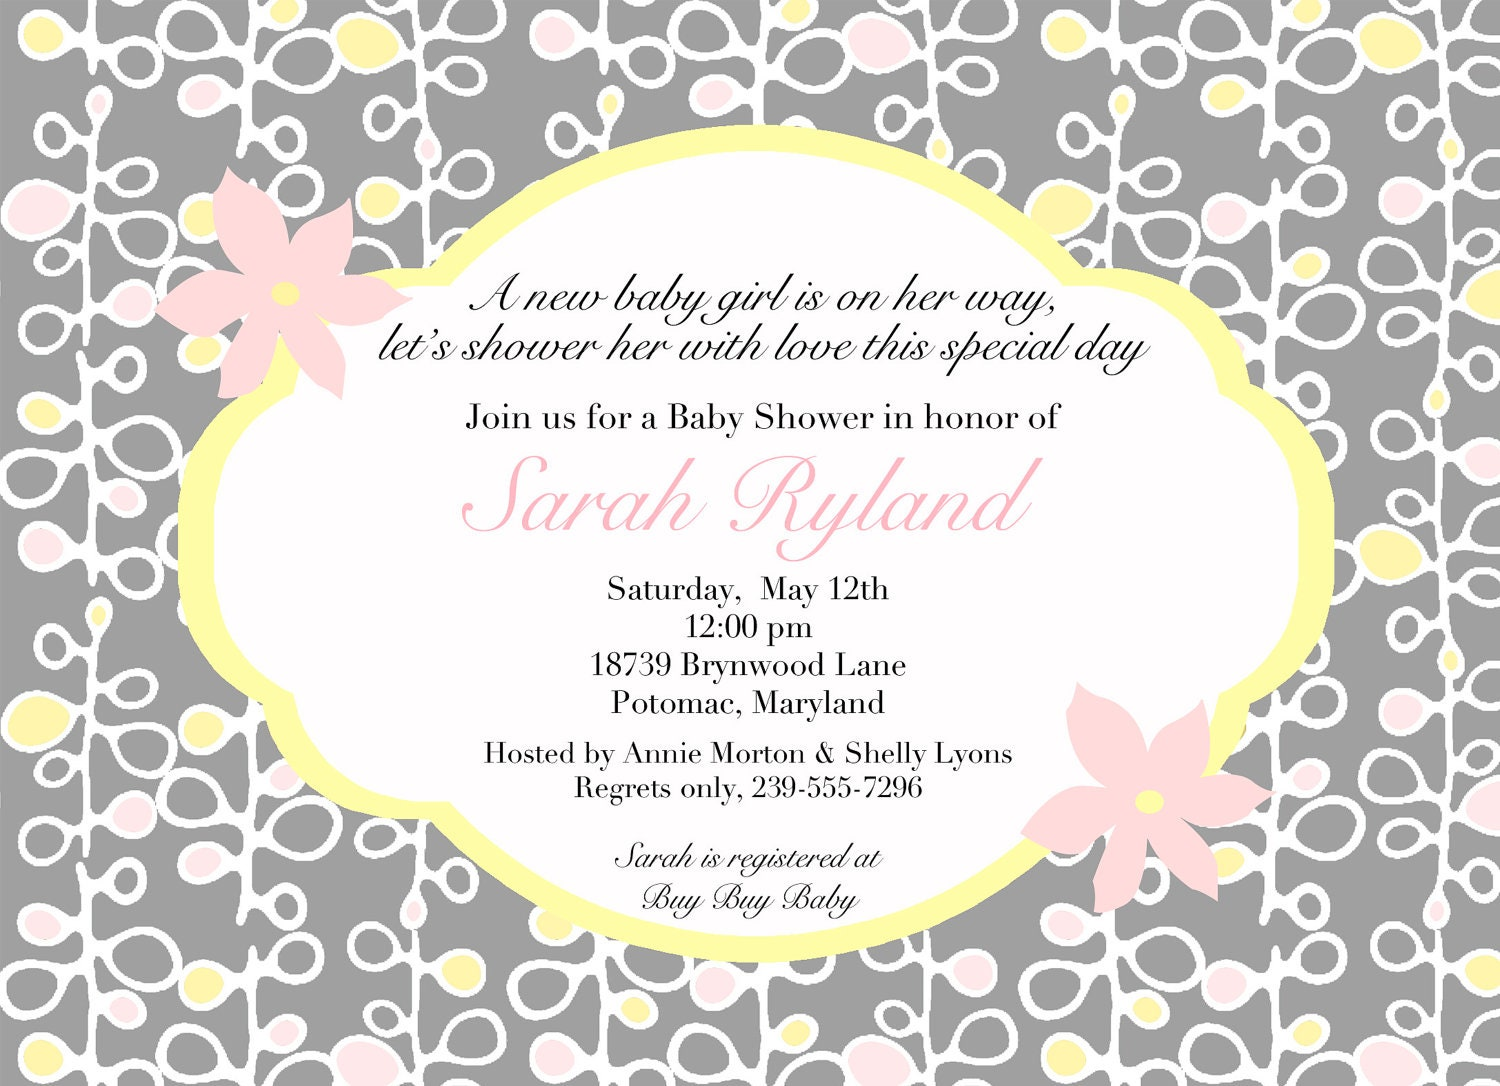 Baby shower invite words etamemibawa baby shower invite words filmwisefo Image collections